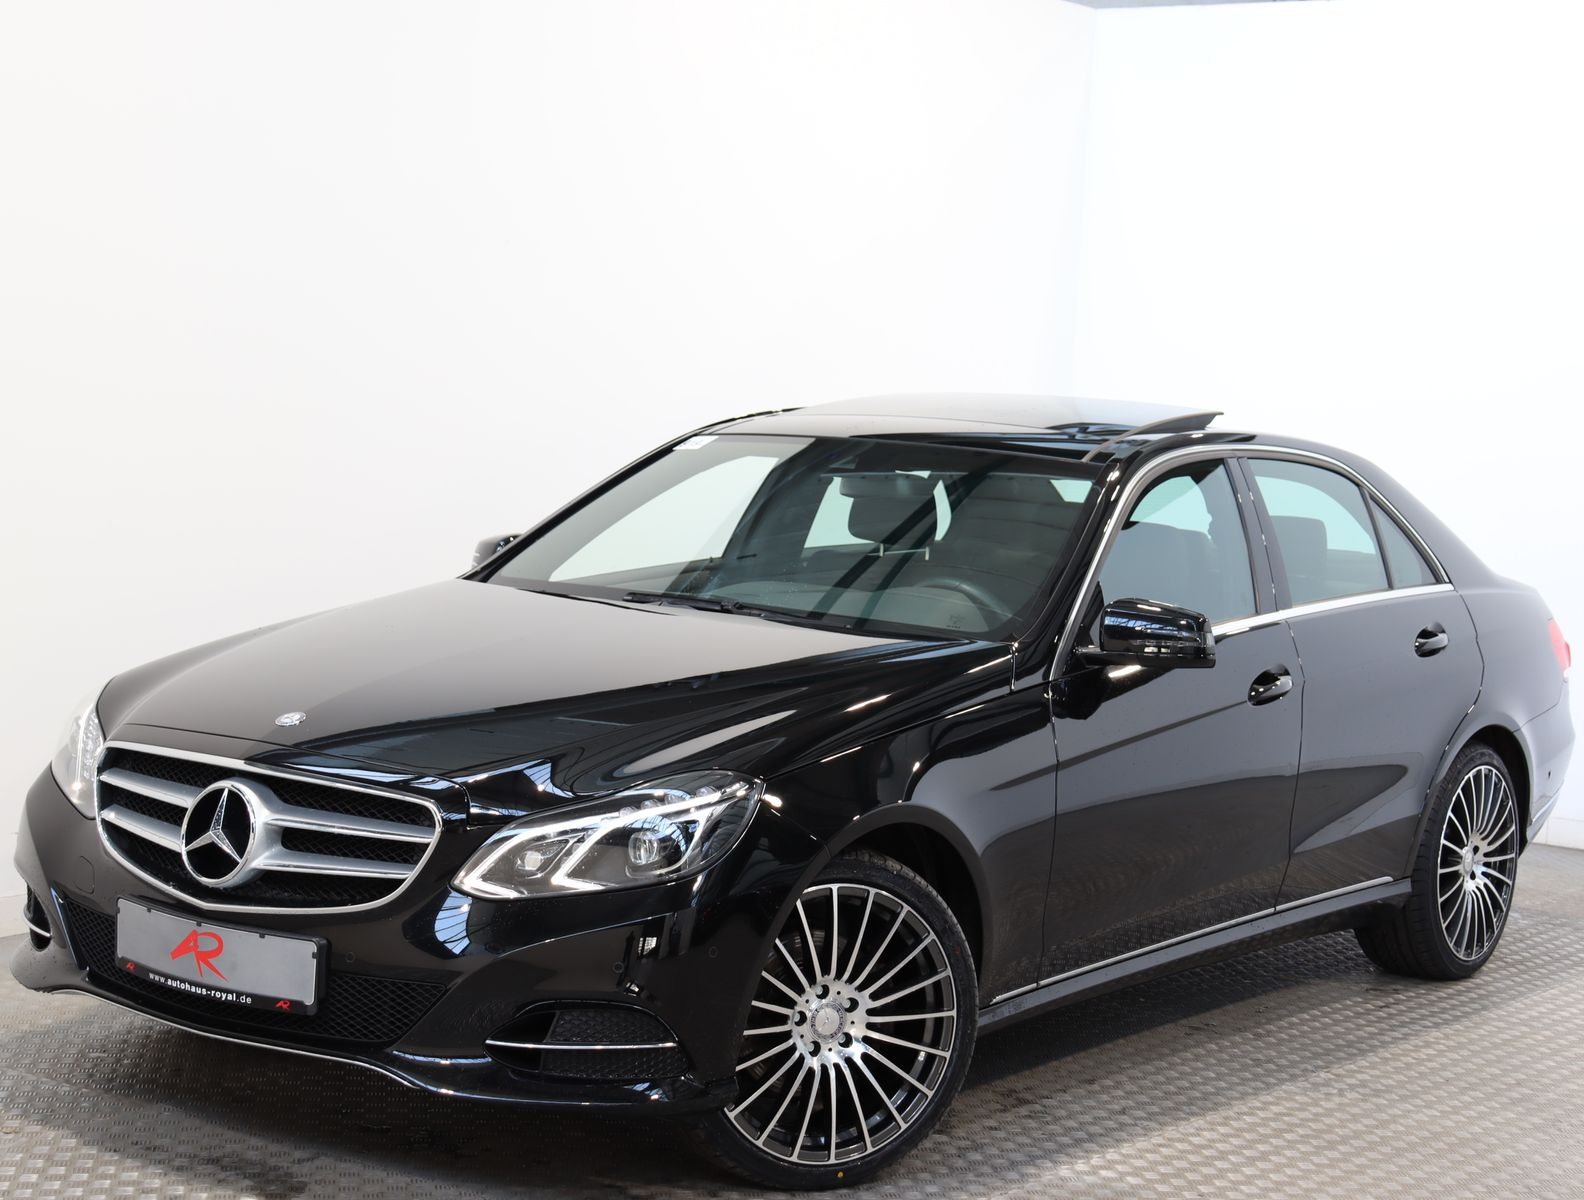 Mercedes-Benz E 300 4M AMG 19Z.,AIRMATIC,PANORAMA,COMAND,LED, Jahr 2014, Benzin